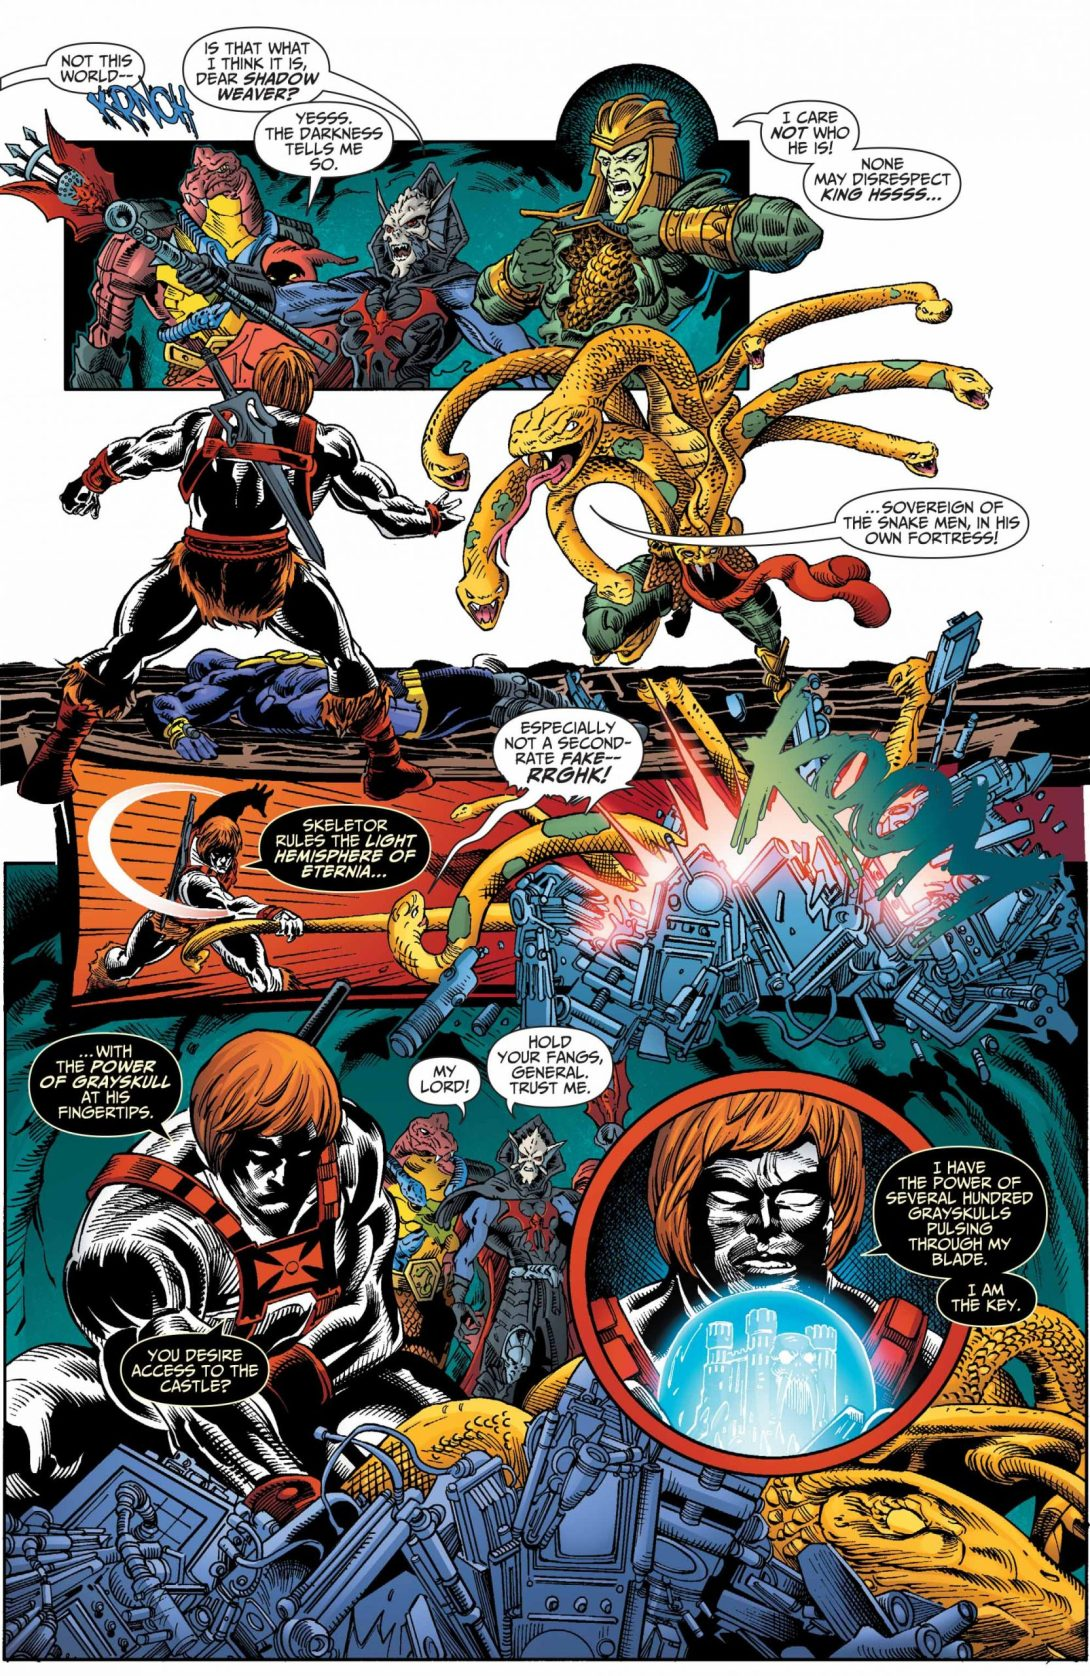 He-Man and the Masters of the Multiverse #3